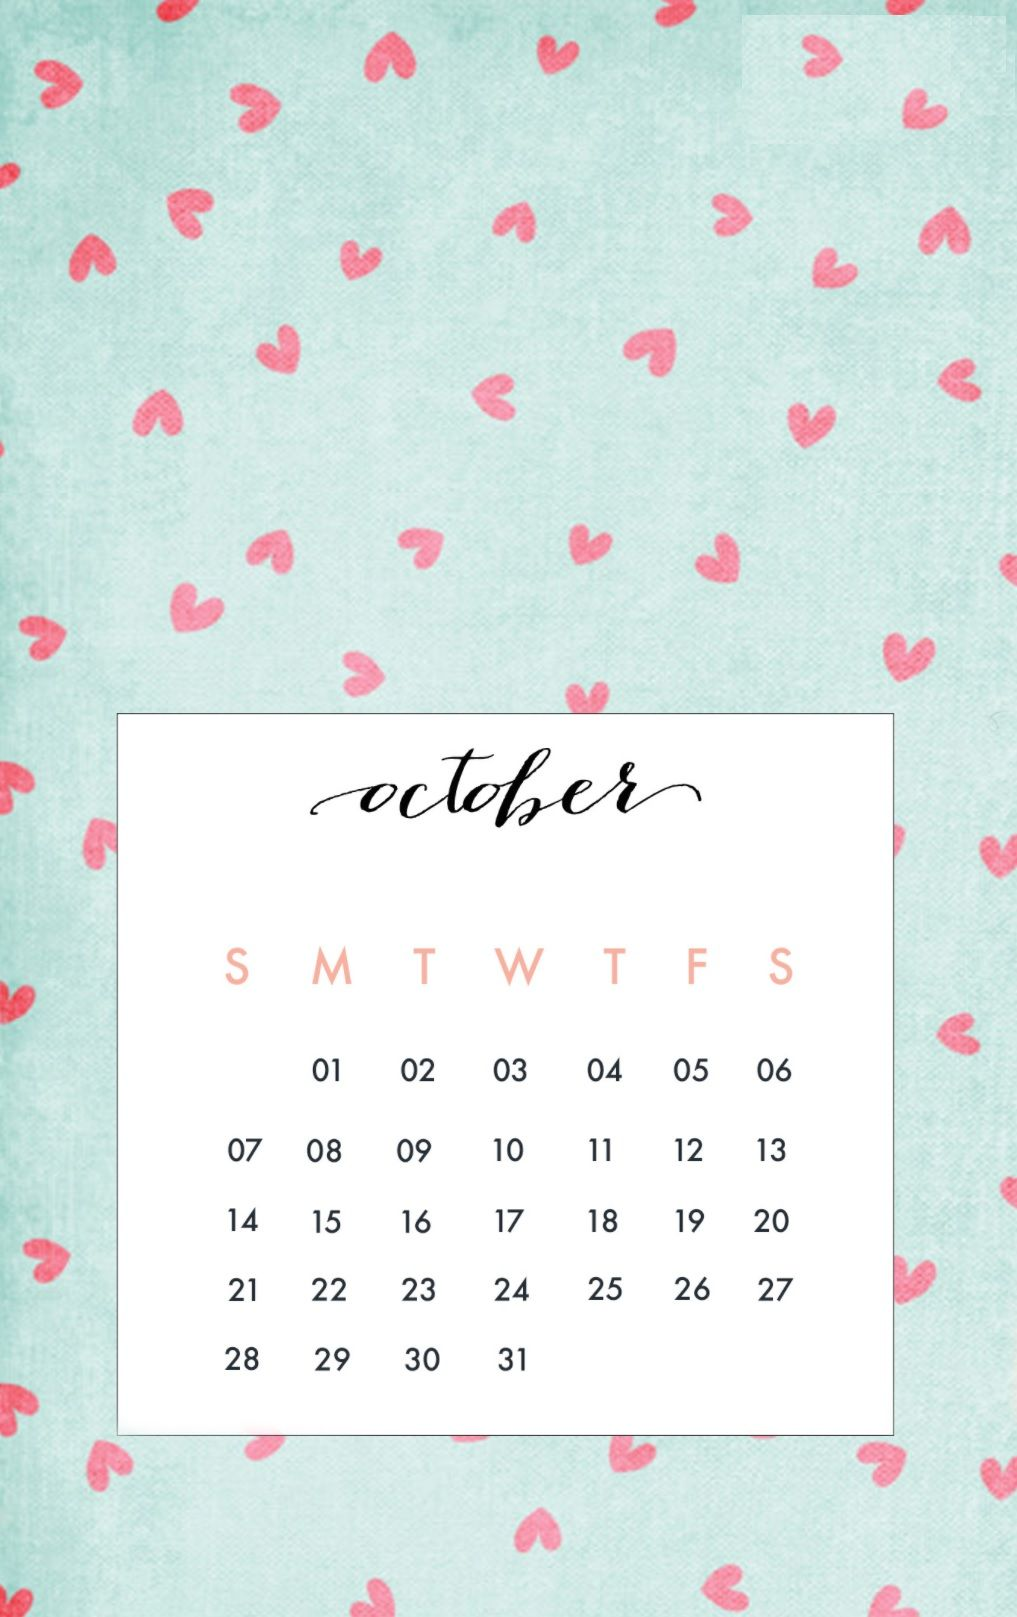 October 2018 iPhone Calendar Wallpapers | Calendar 2018 | Calendar wallpaper, Calendar wallpaper ...